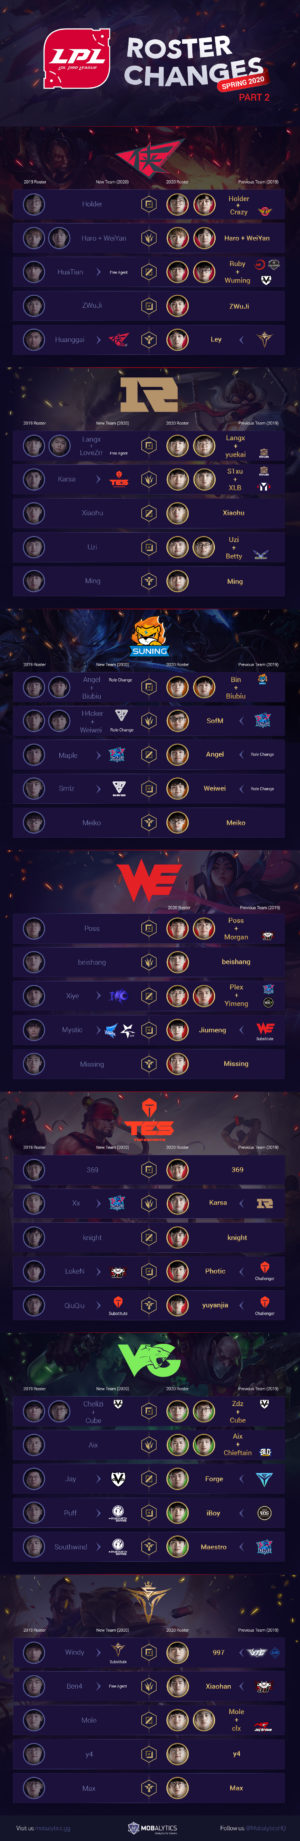 LPL Roster Changes Infographic (Spring 2020 Teams, Part II)